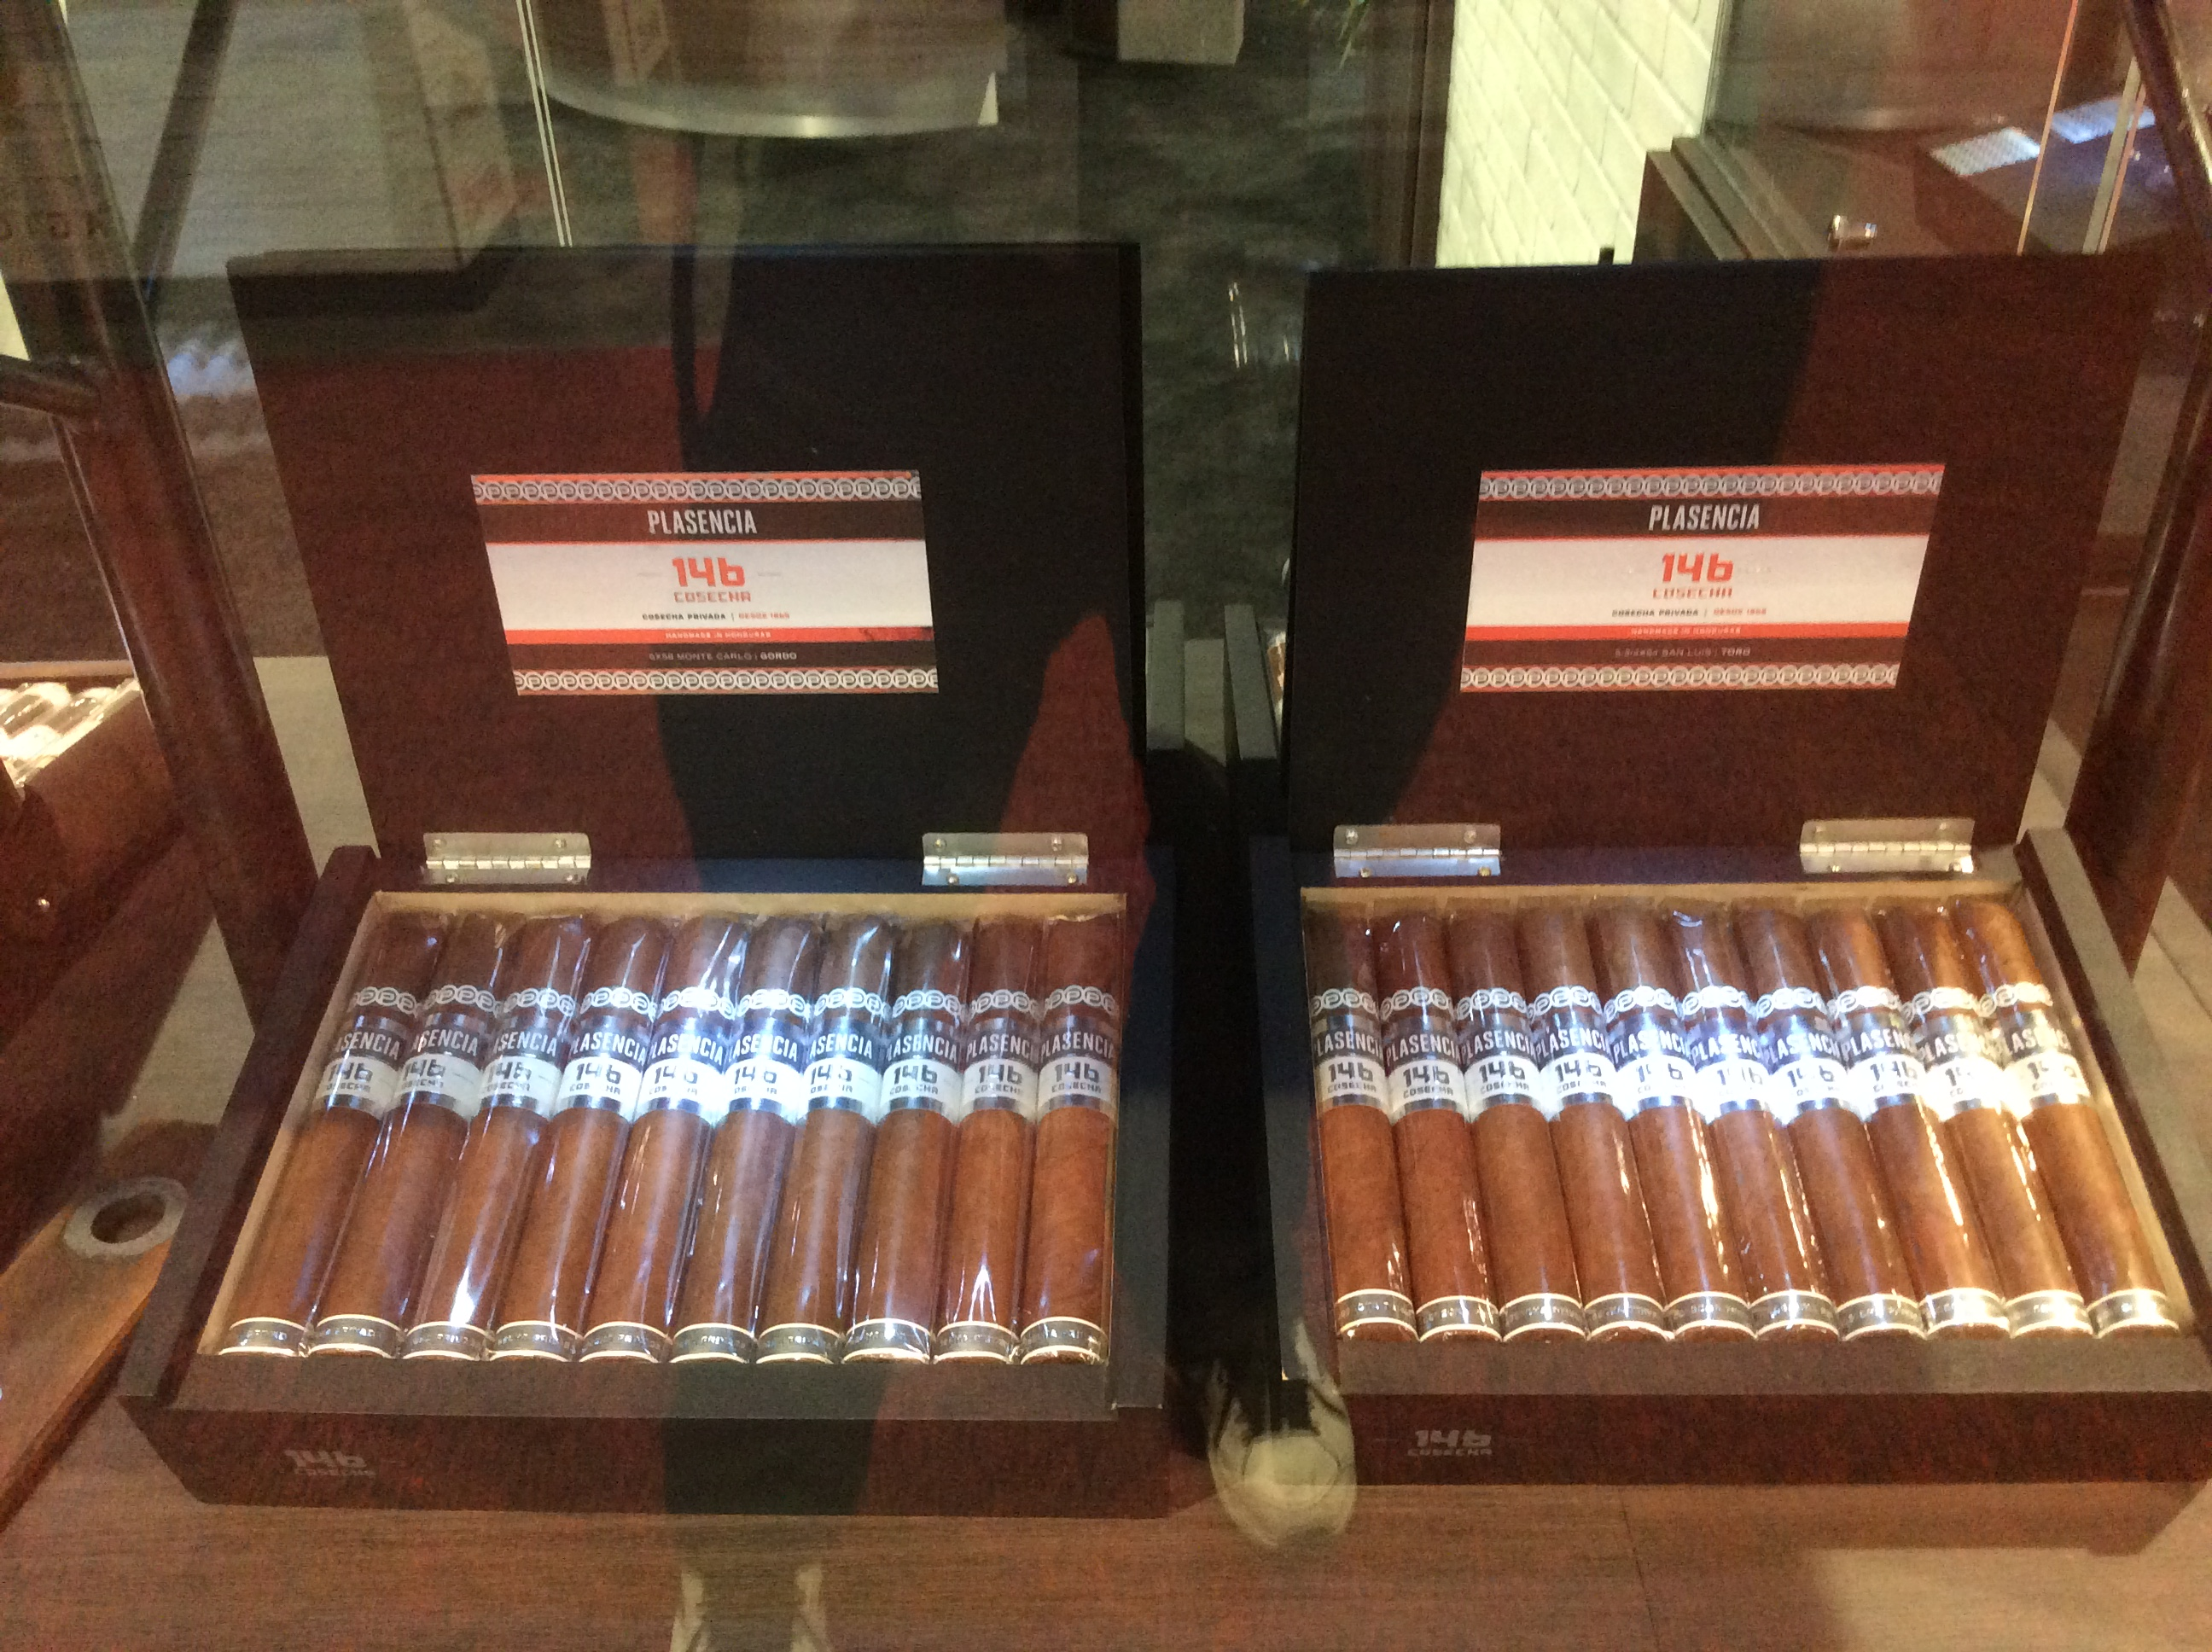 Cigar News: Plasencia Cosecha 146 Released into U.S. Market